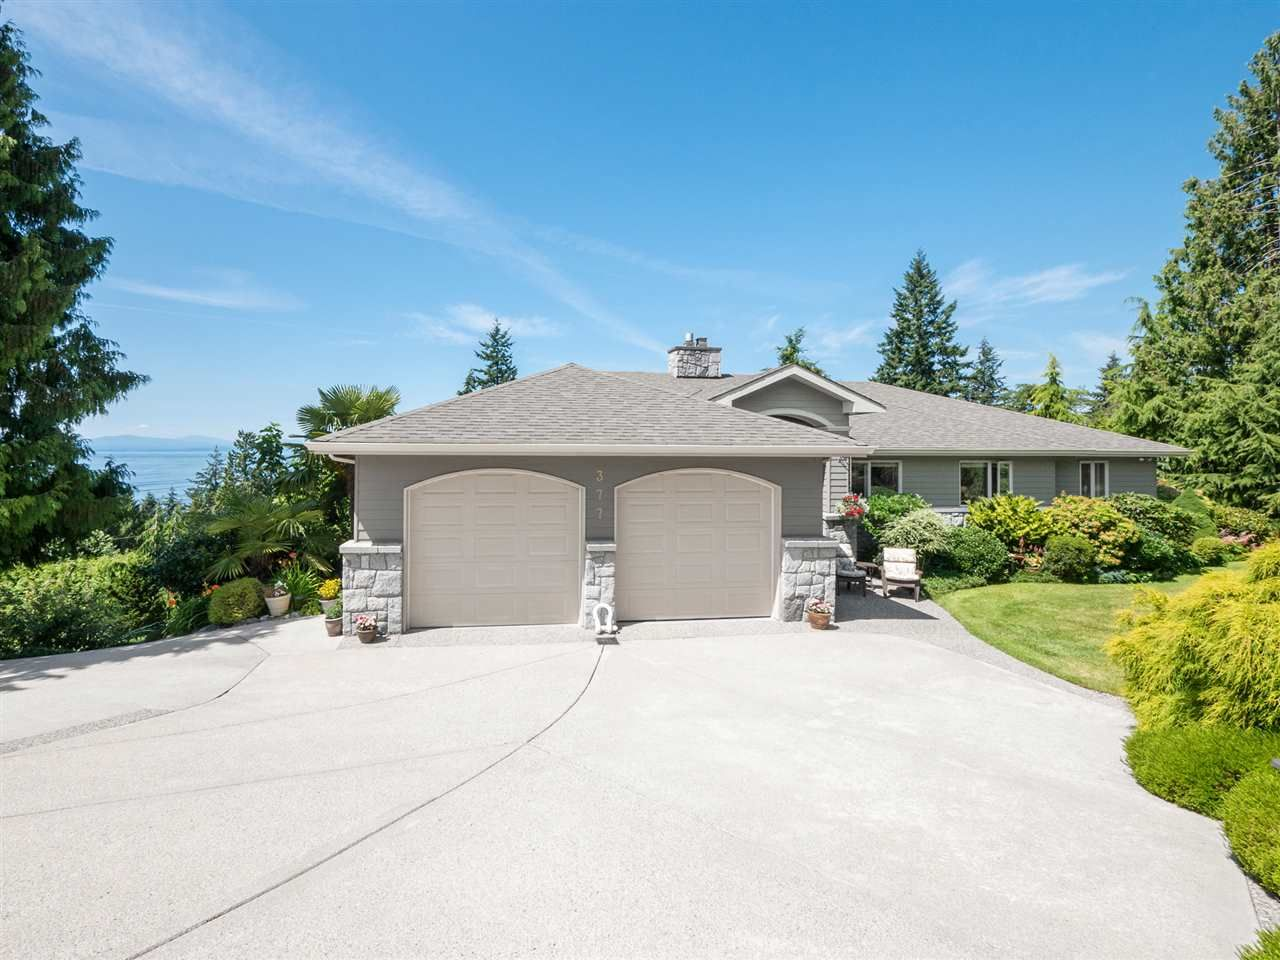 Main Photo: 377 HARRY Road in Gibsons: Gibsons & Area House for sale (Sunshine Coast)  : MLS®# R2480718